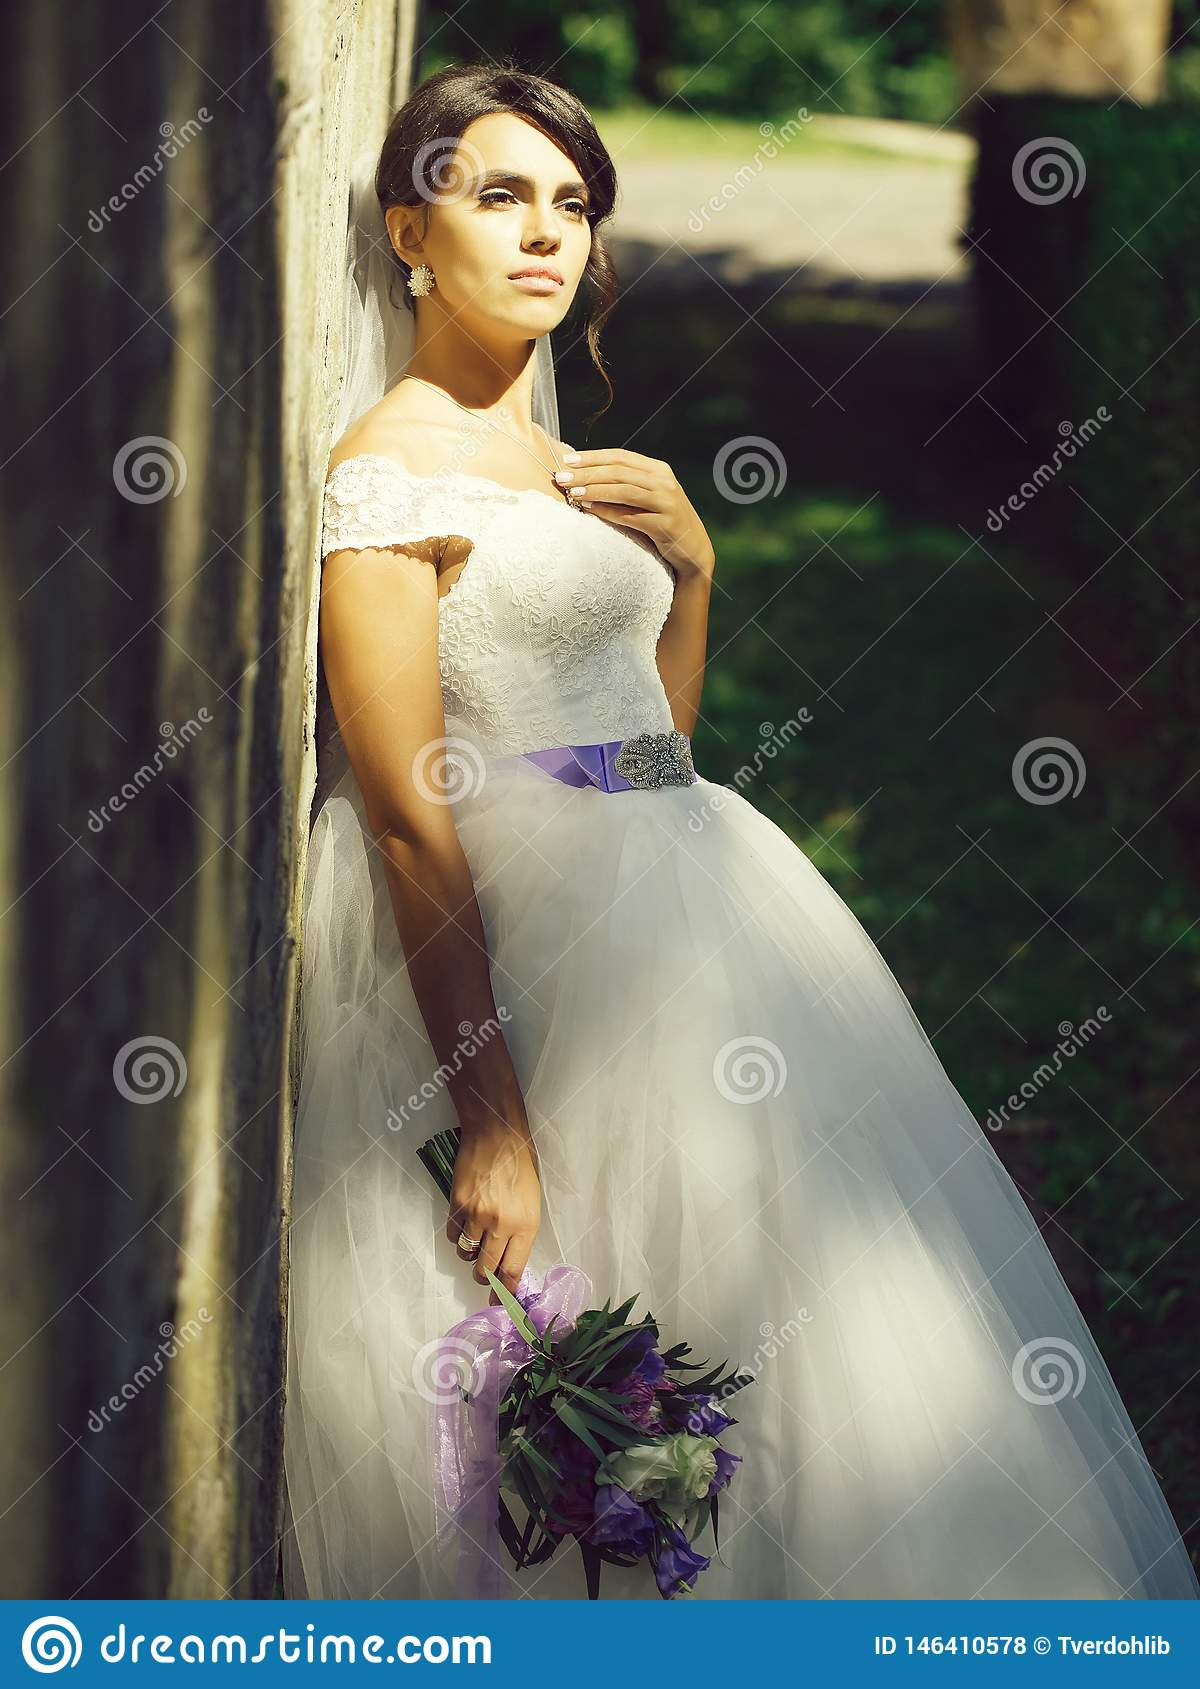 Pretty Bride With Flower Bouquet Stock Photo Image Of Bride